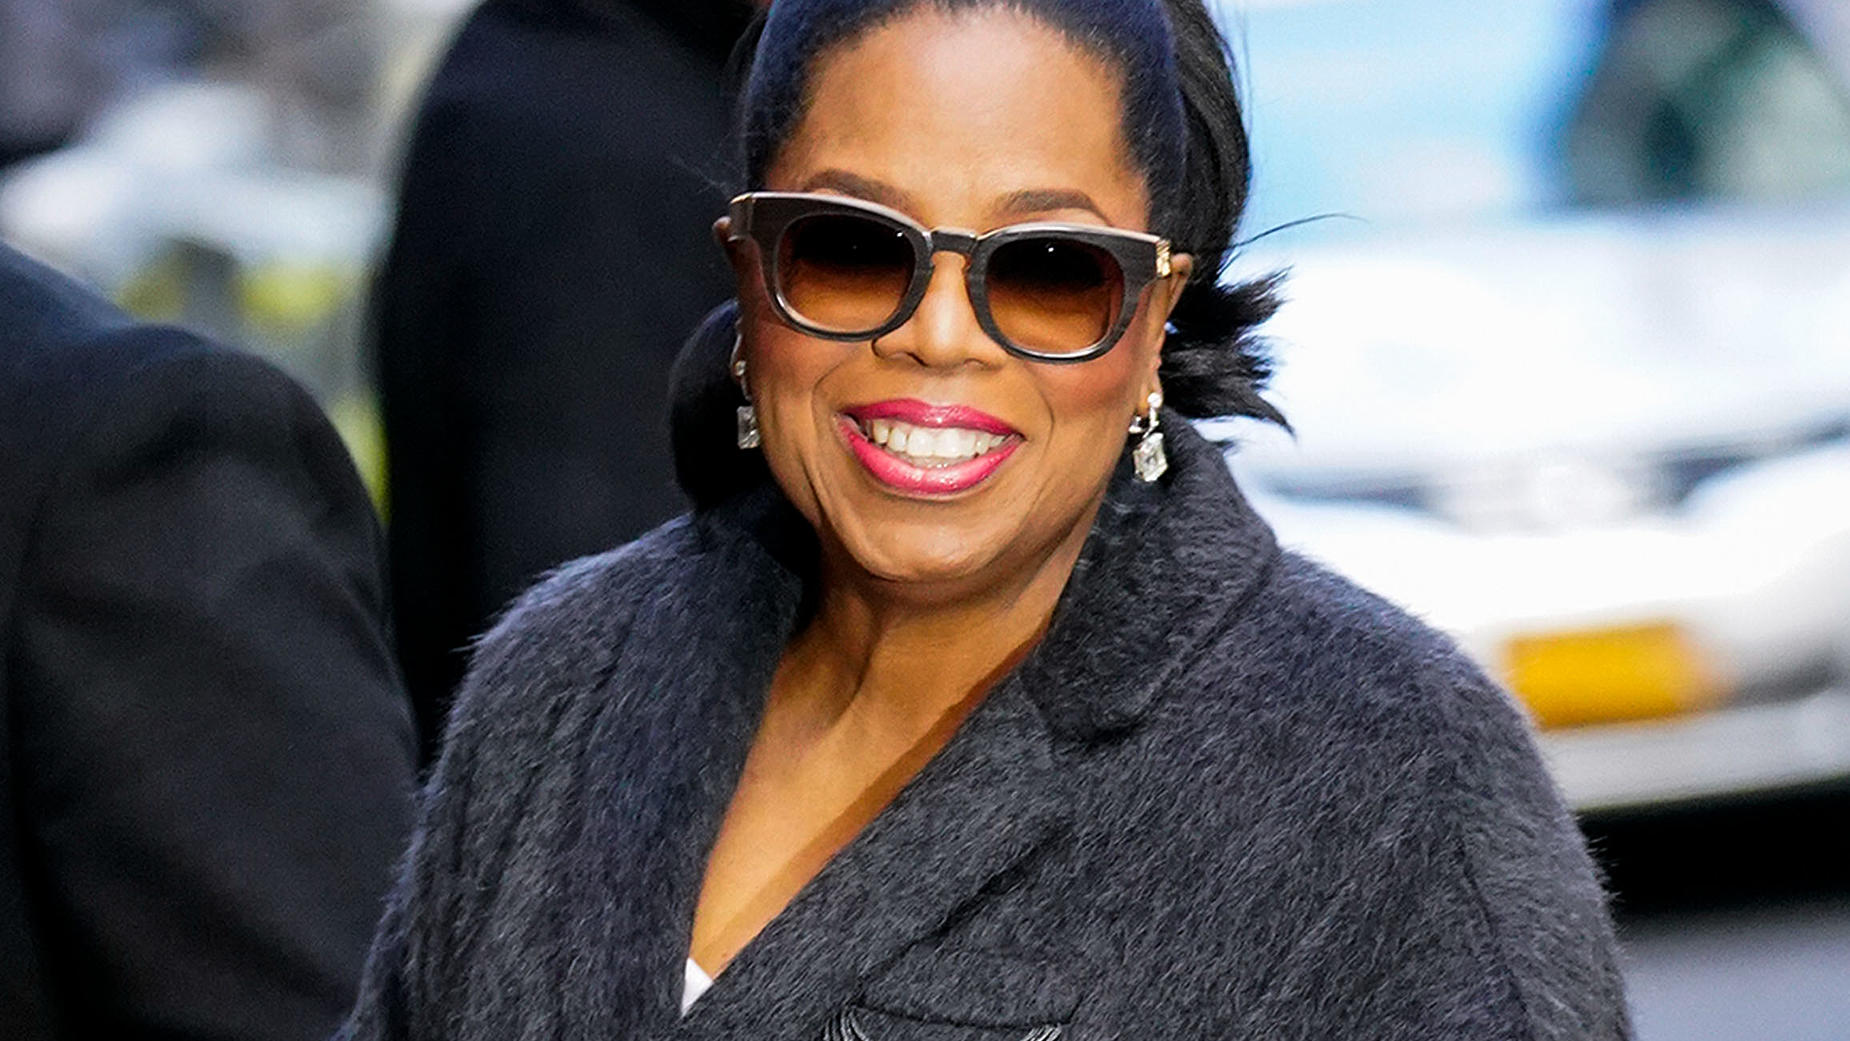 Oprah Winfrey waves hello when she arrives at Colbert show in New York